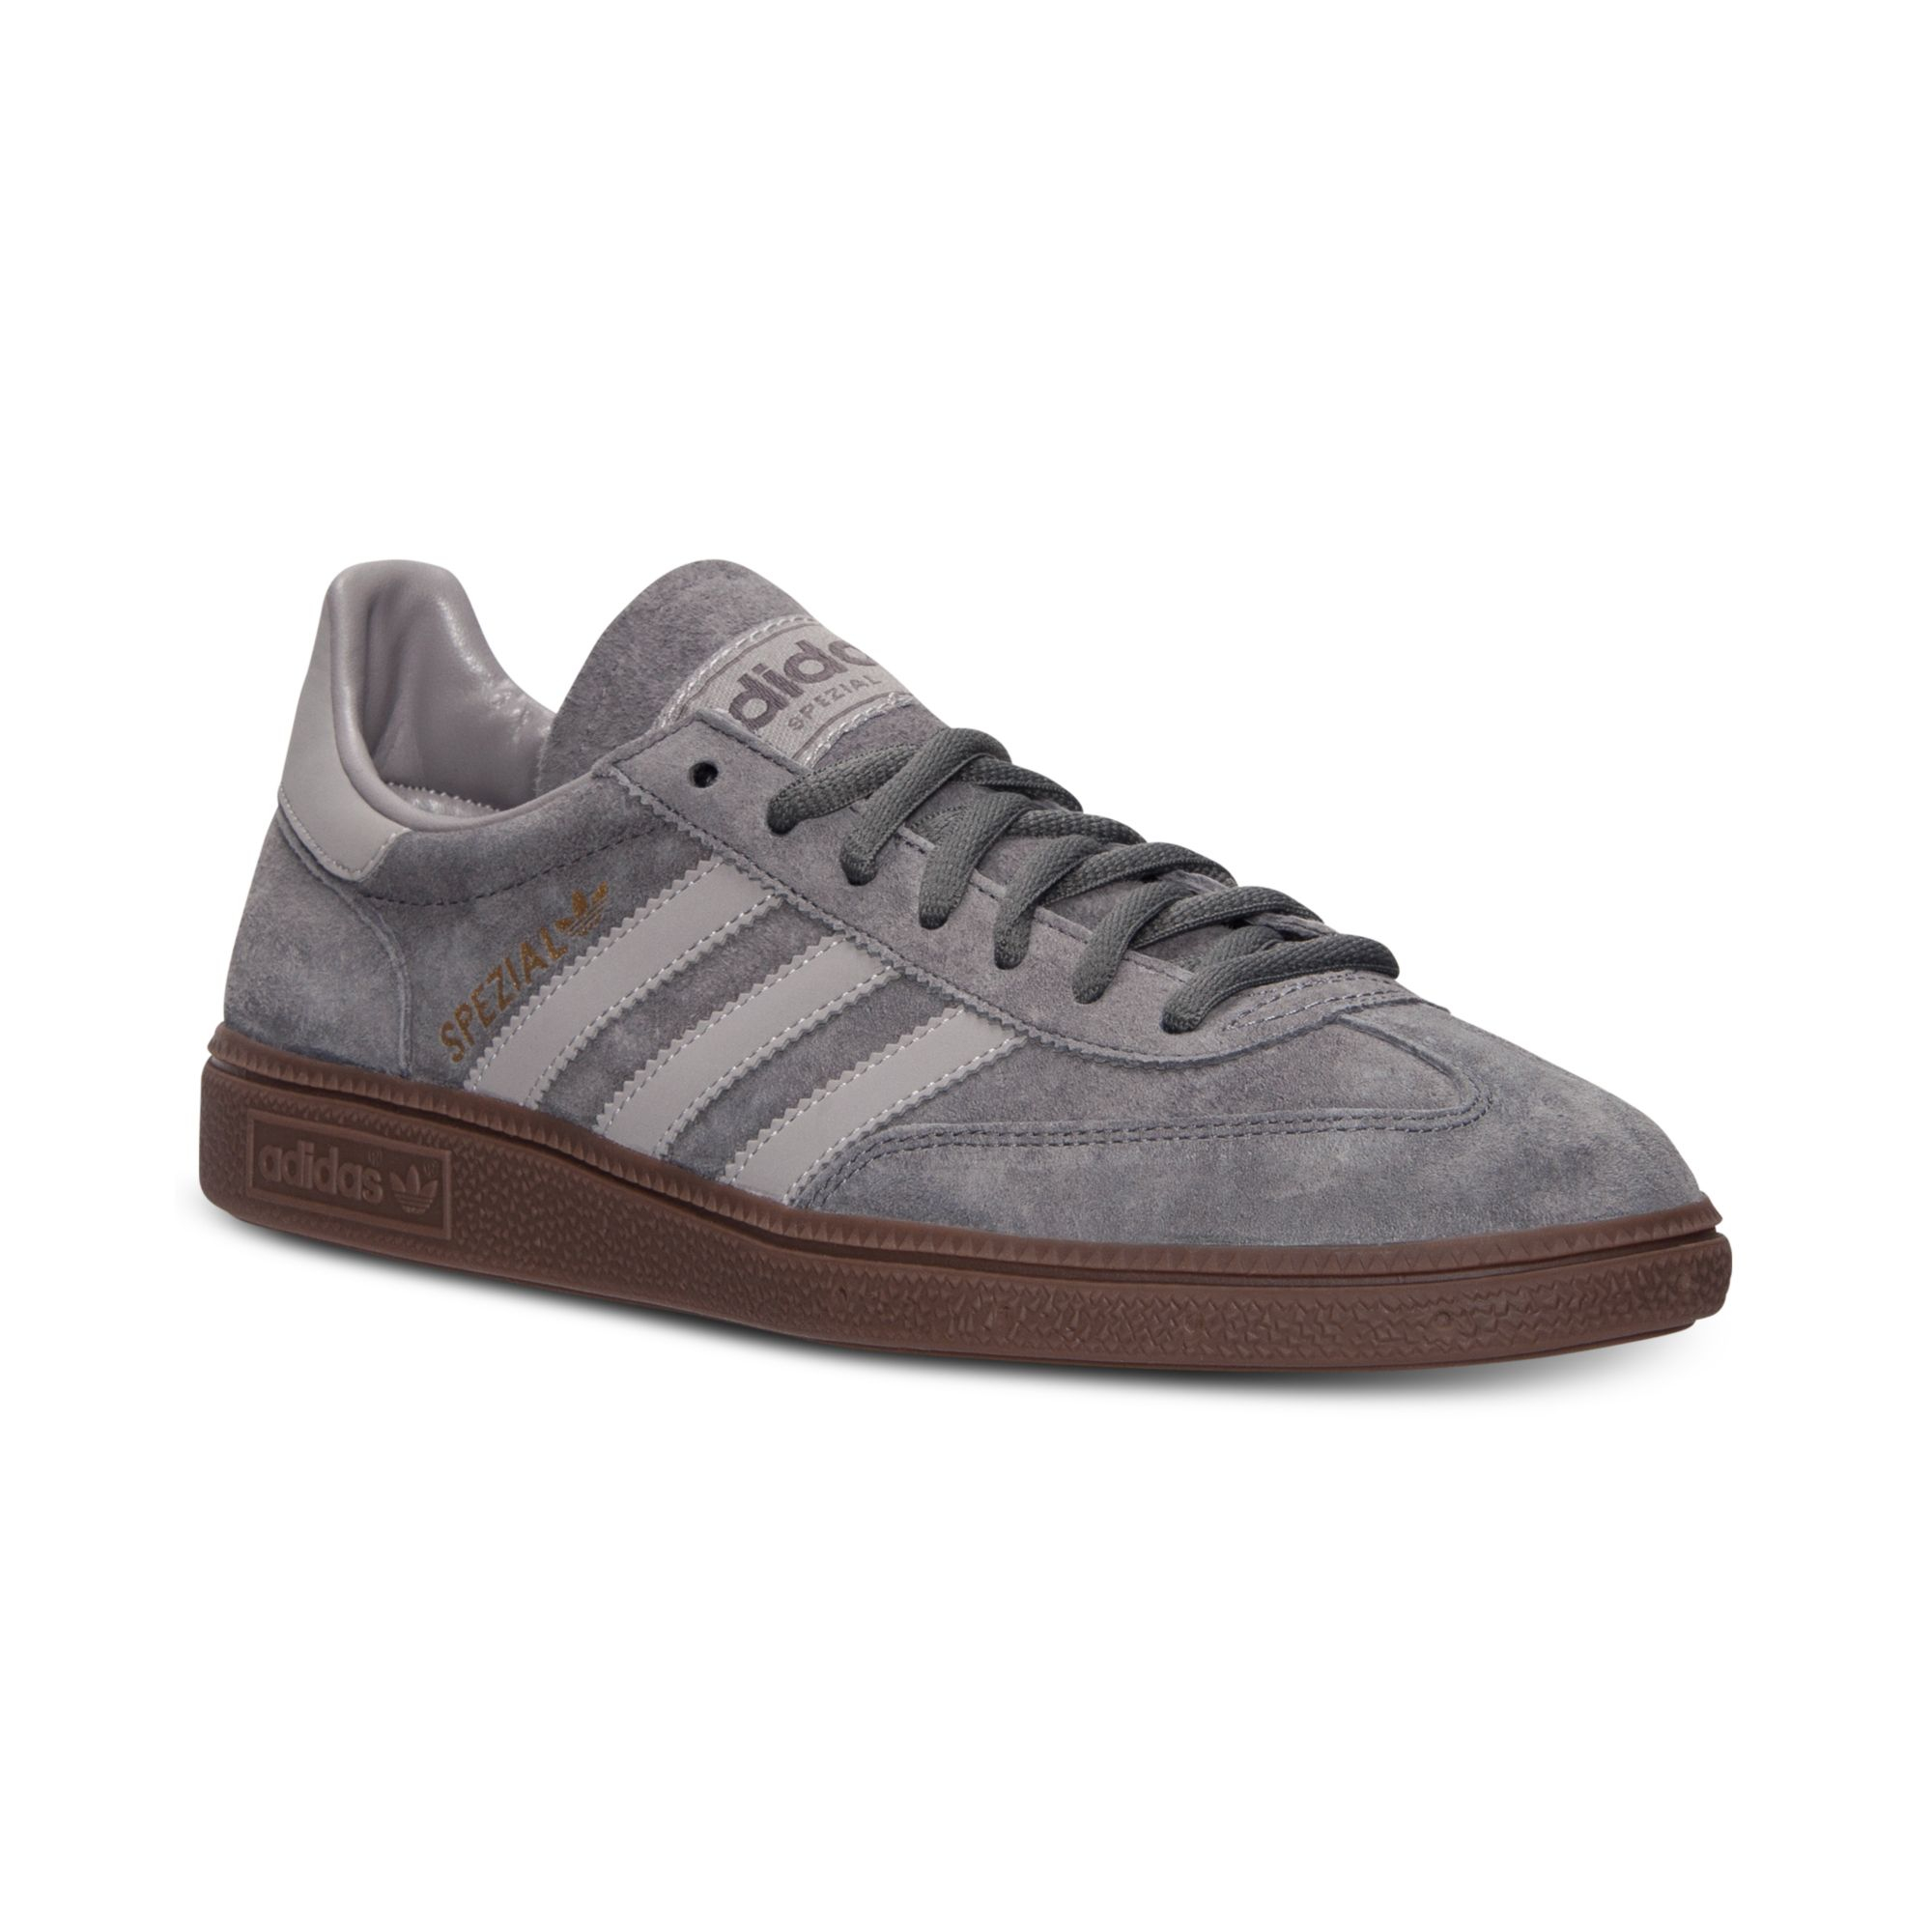 Adidas Low Top Casual Shoes